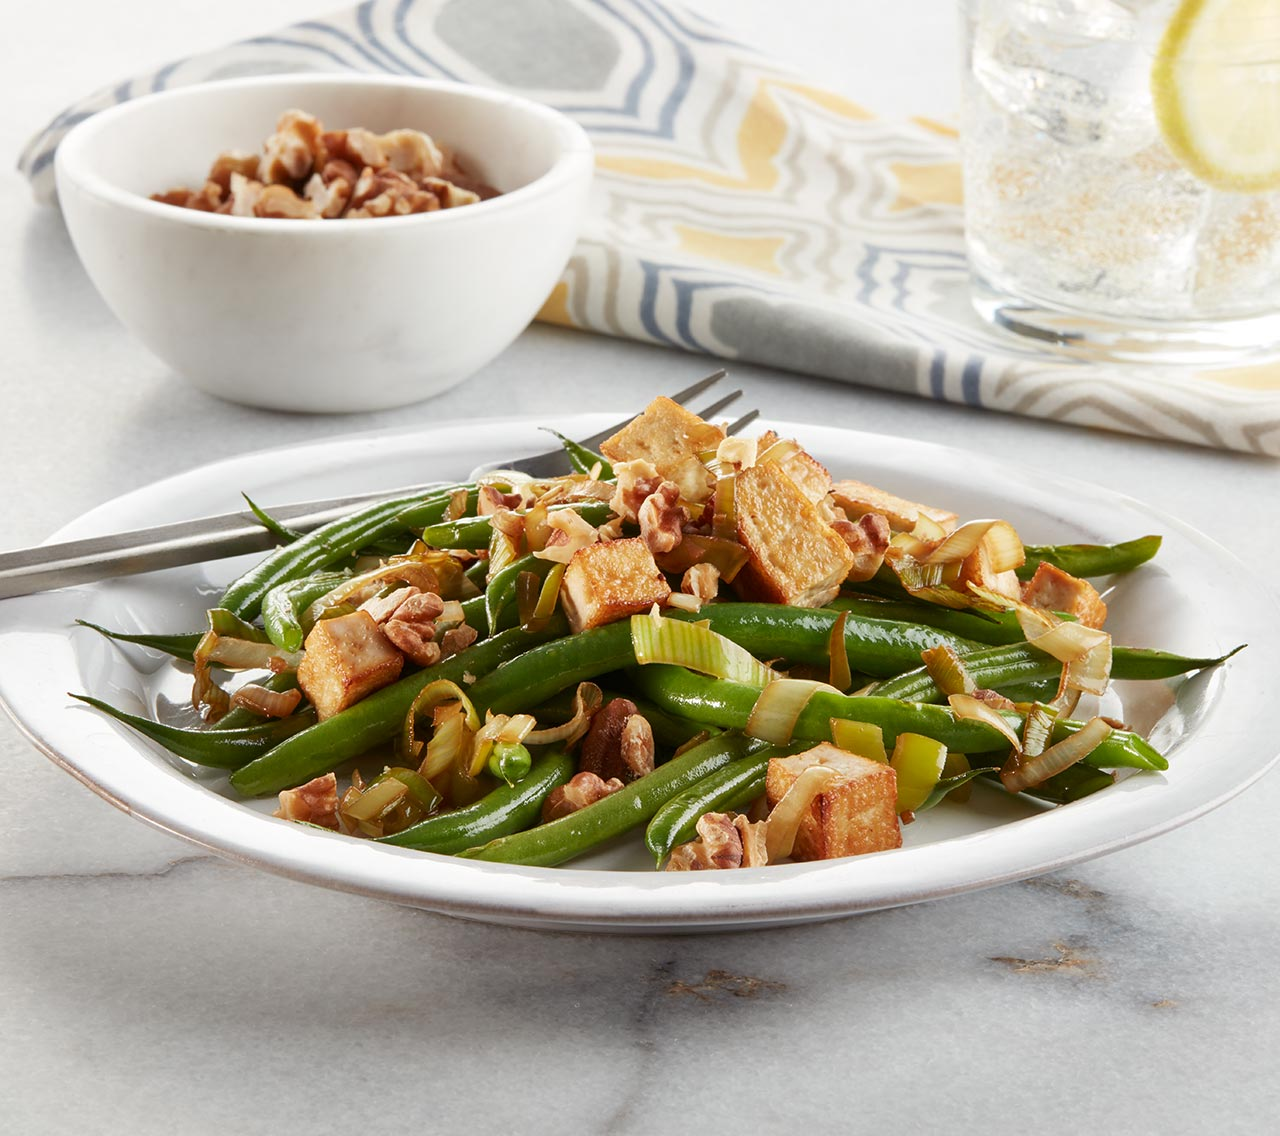 Vegan Garlic Soy Green Beans with Tofu